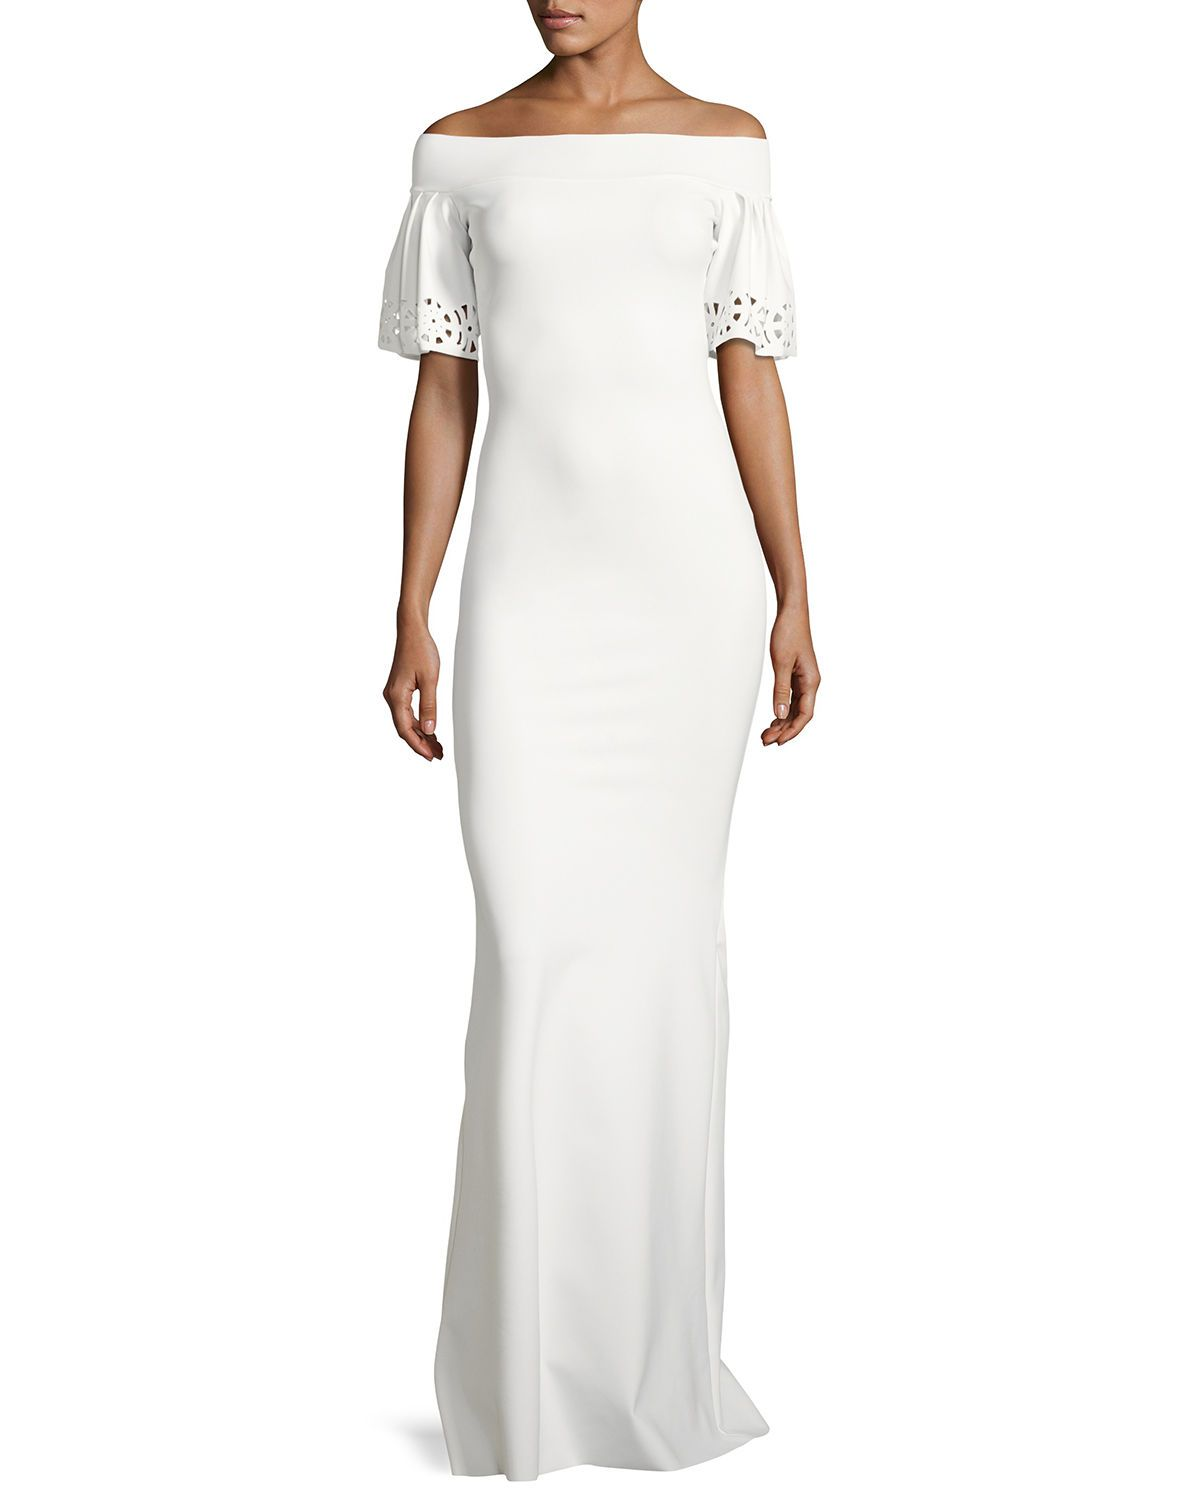 Amice shortsleeve jersey offtheshoulder gown the oujays